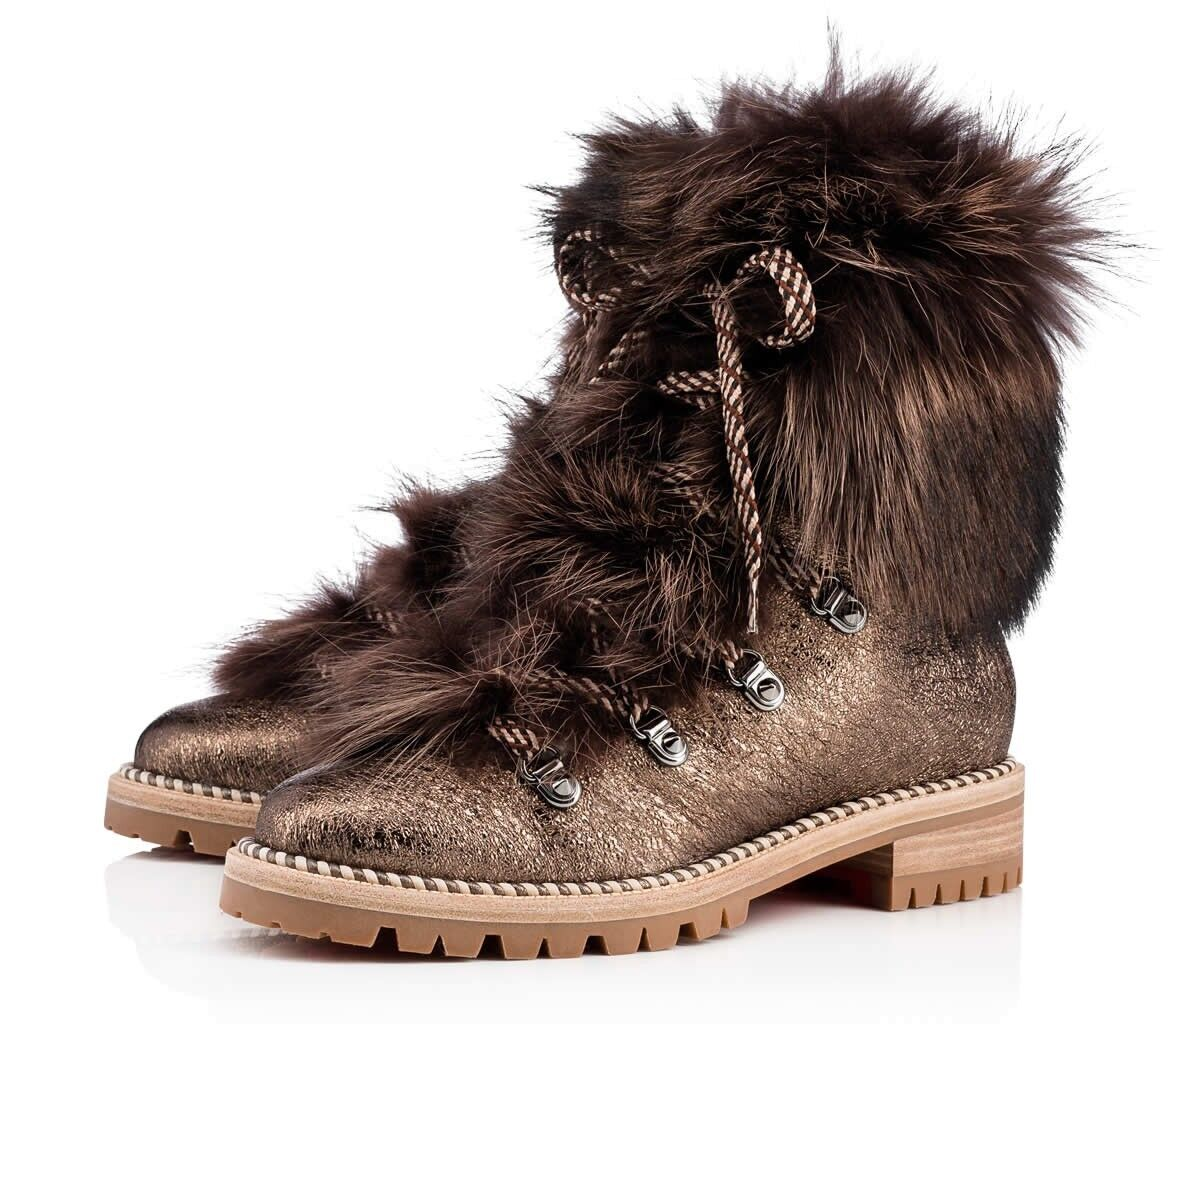 NB Christian Louboutin Fanny Flat Roche Fur Leather Lace Up Tie Combat Boot 35.5